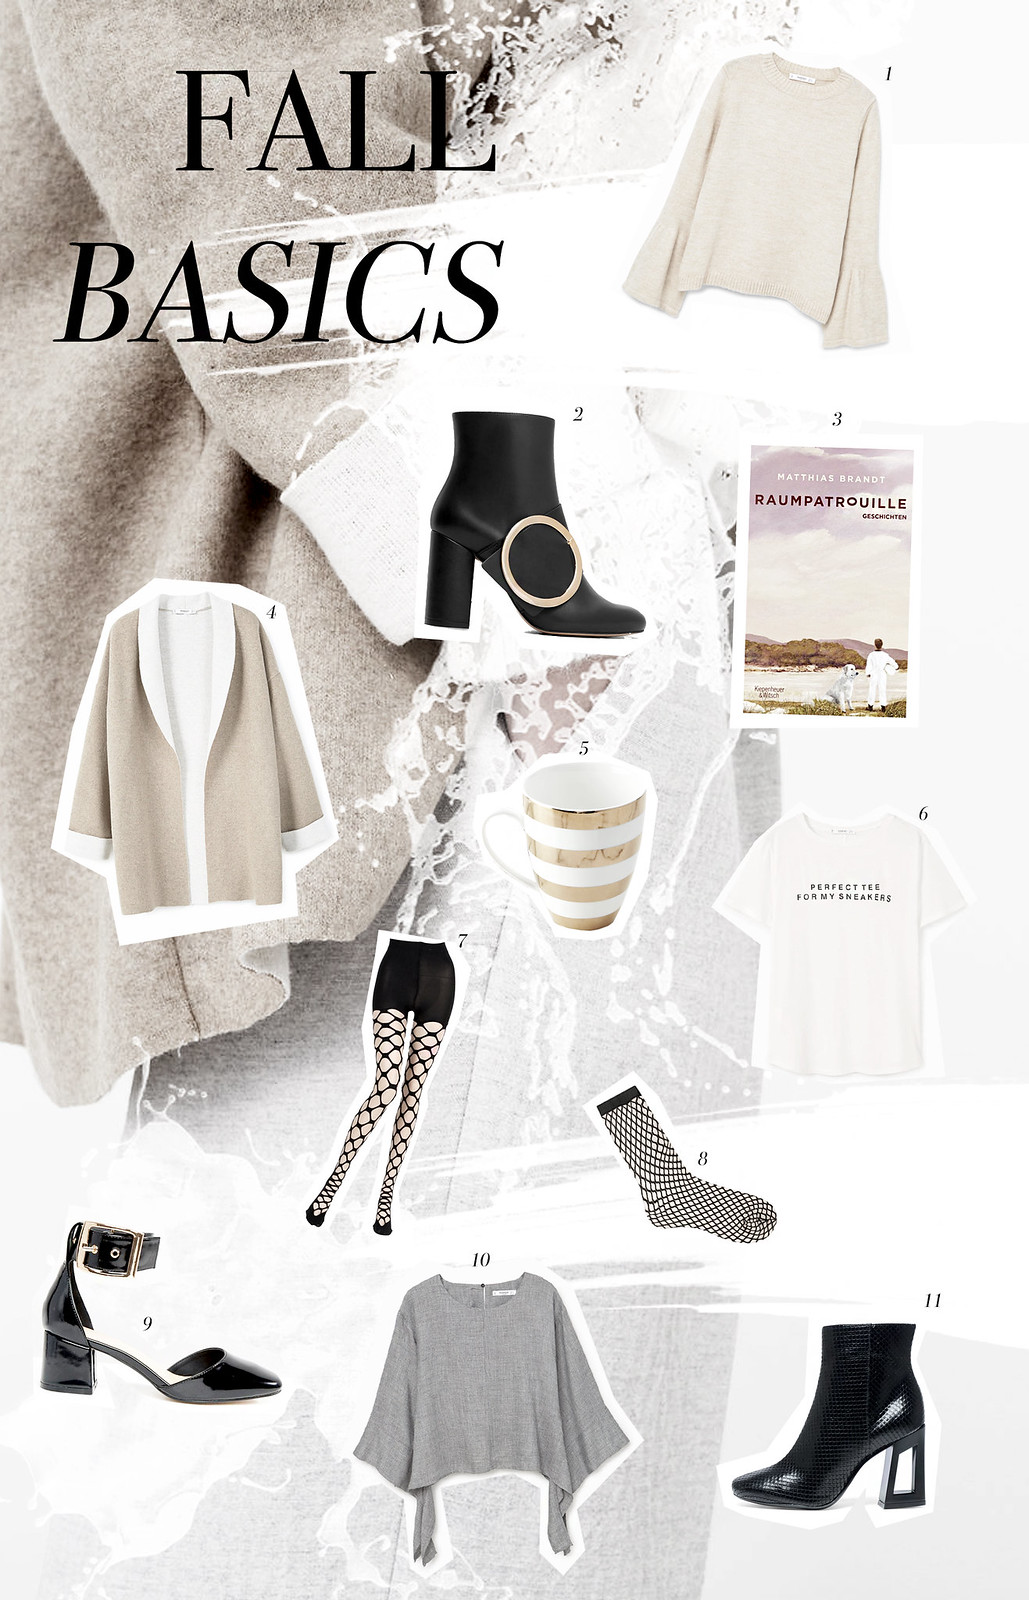 fall basics collage style inspiration shopping magazine look mag style cut out minimal fashionblogger germanblogger cats & dogs modeblog ricarda schernus fashionblogger mango new fall basics trend fishnet tights grey beige nude book home love cozy 1